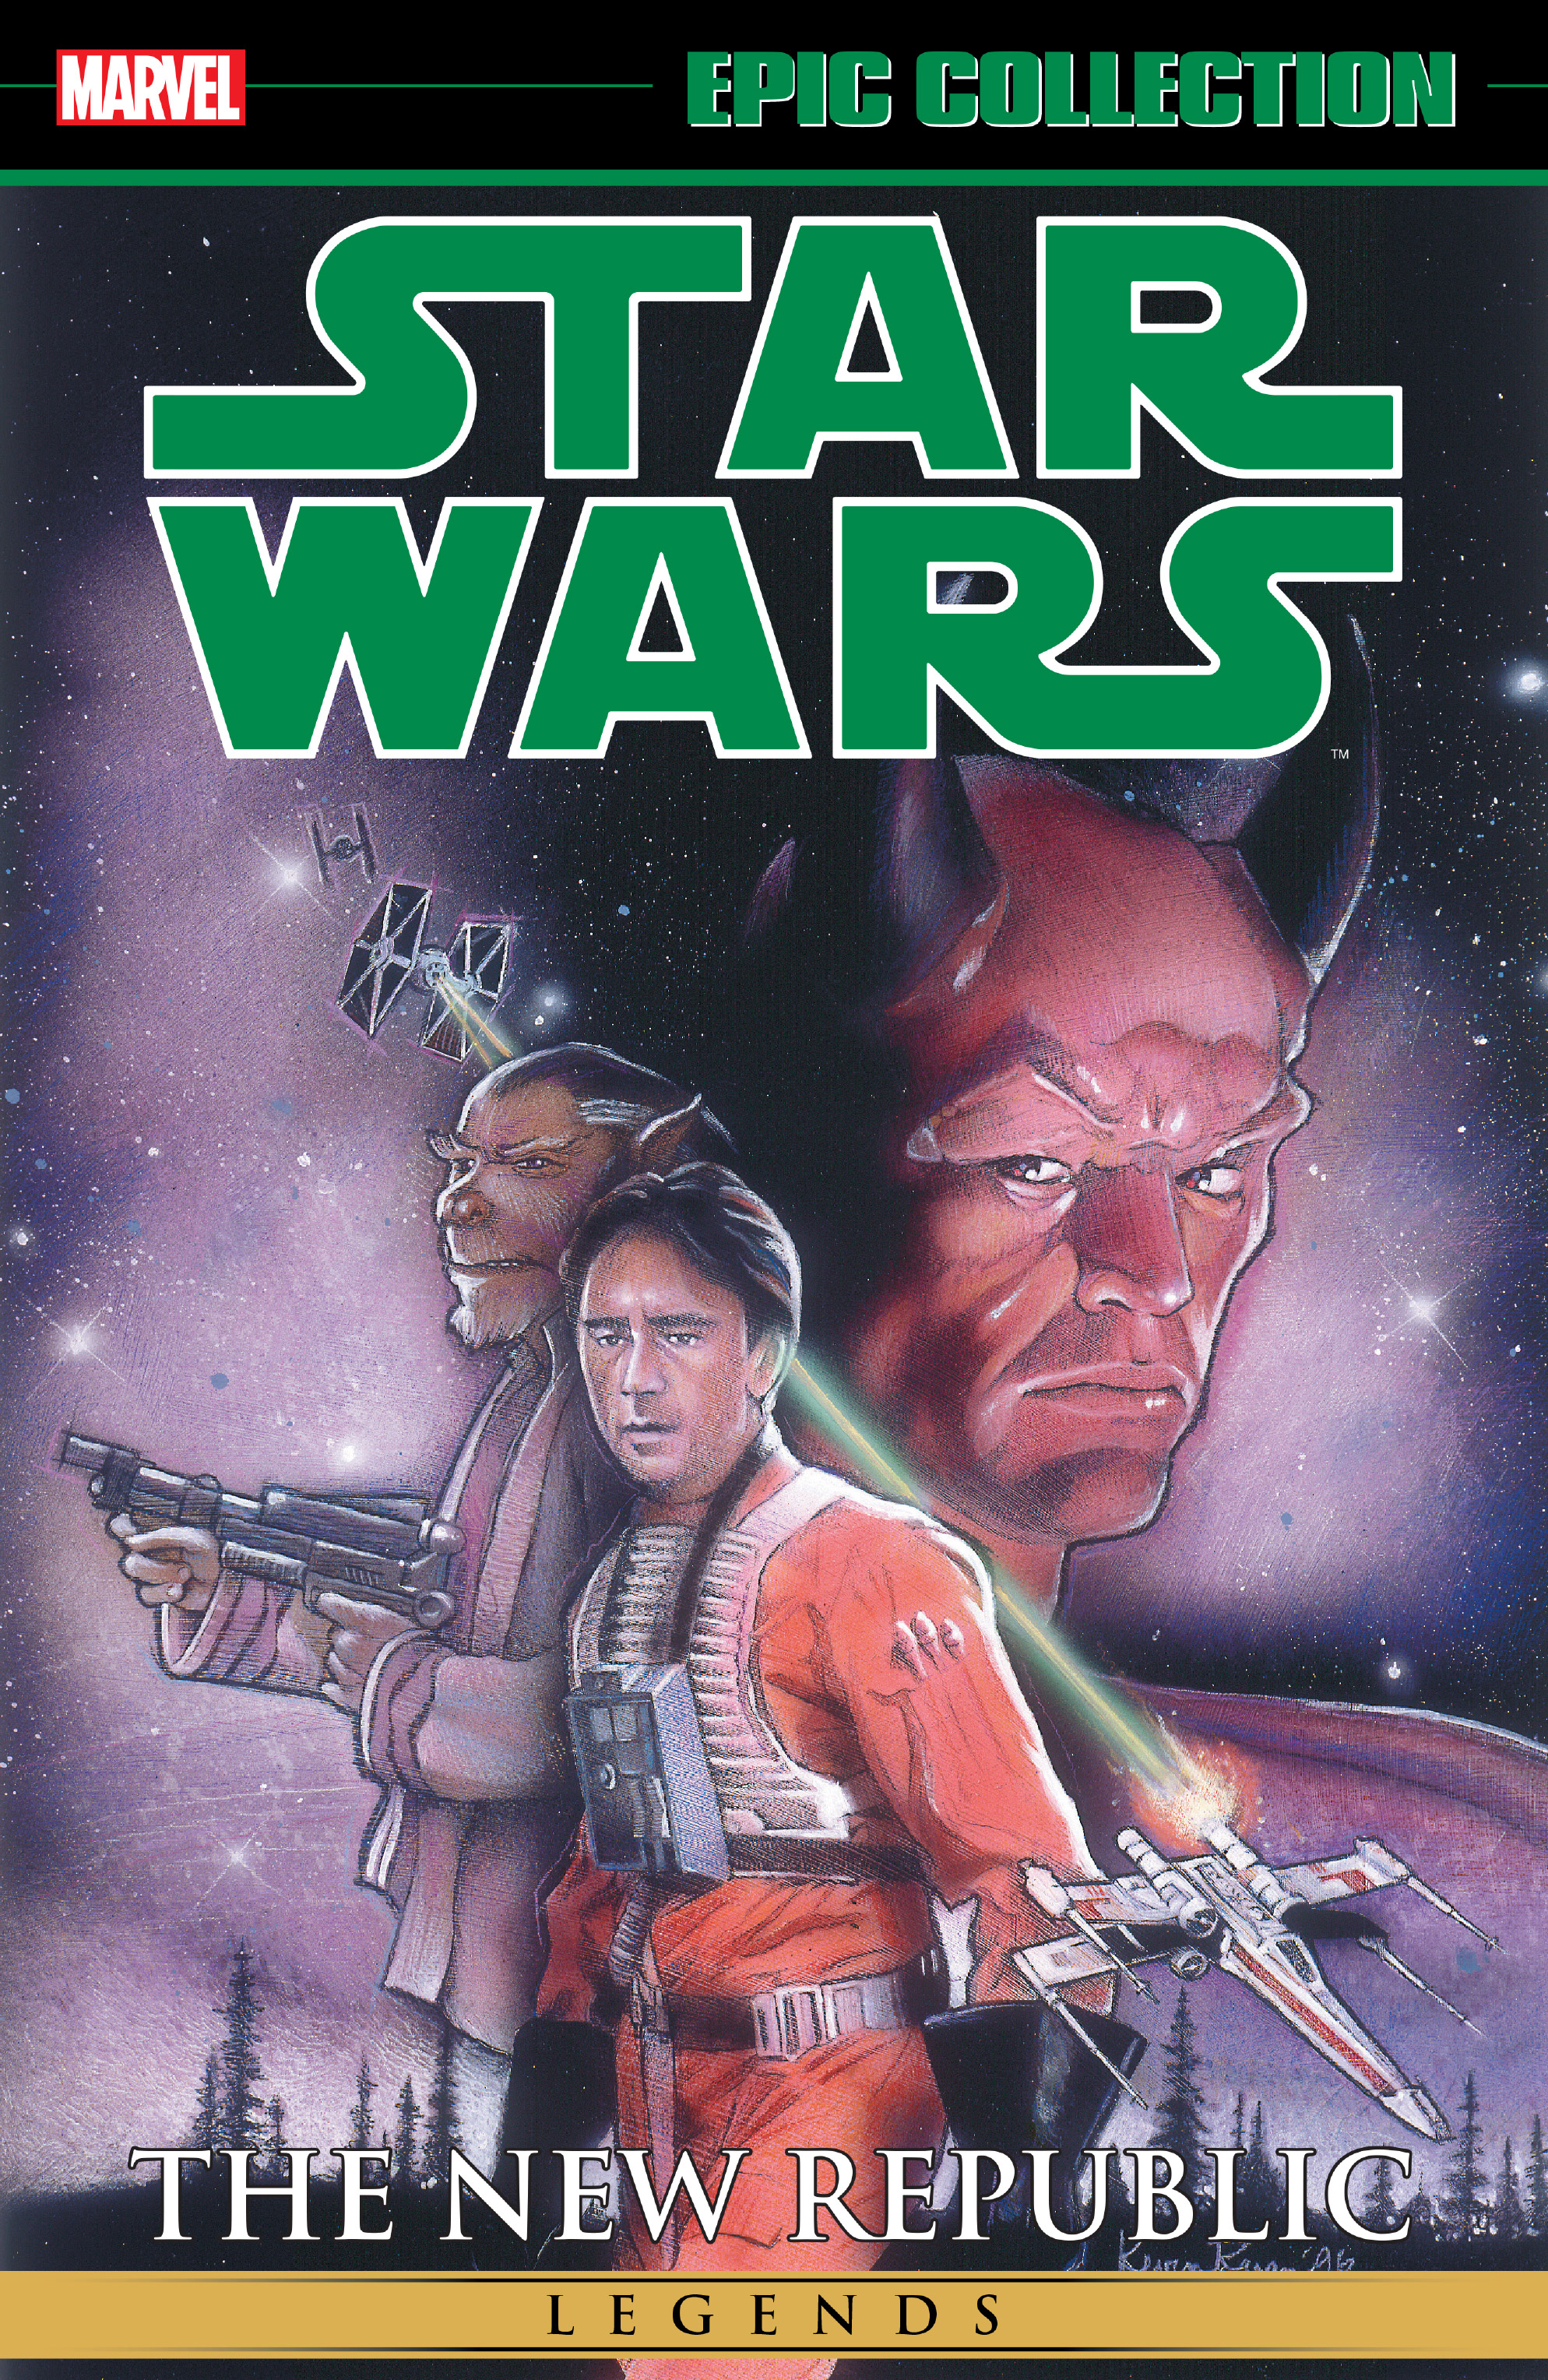 Star Wars Legends Epic Collection: The New Republic Volume 3 (19.12.2017)q